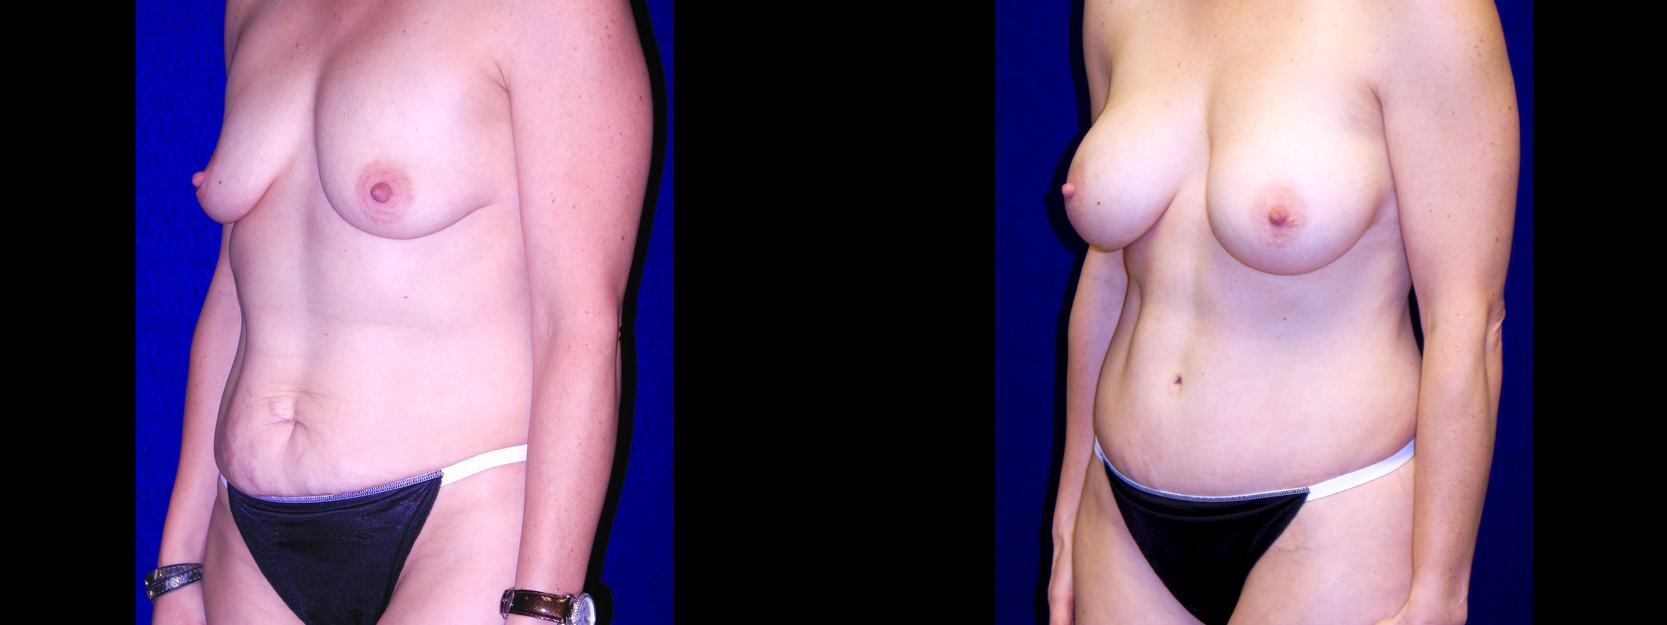 Left 3/4 View - Breast Augmentation & Tummy Tuck